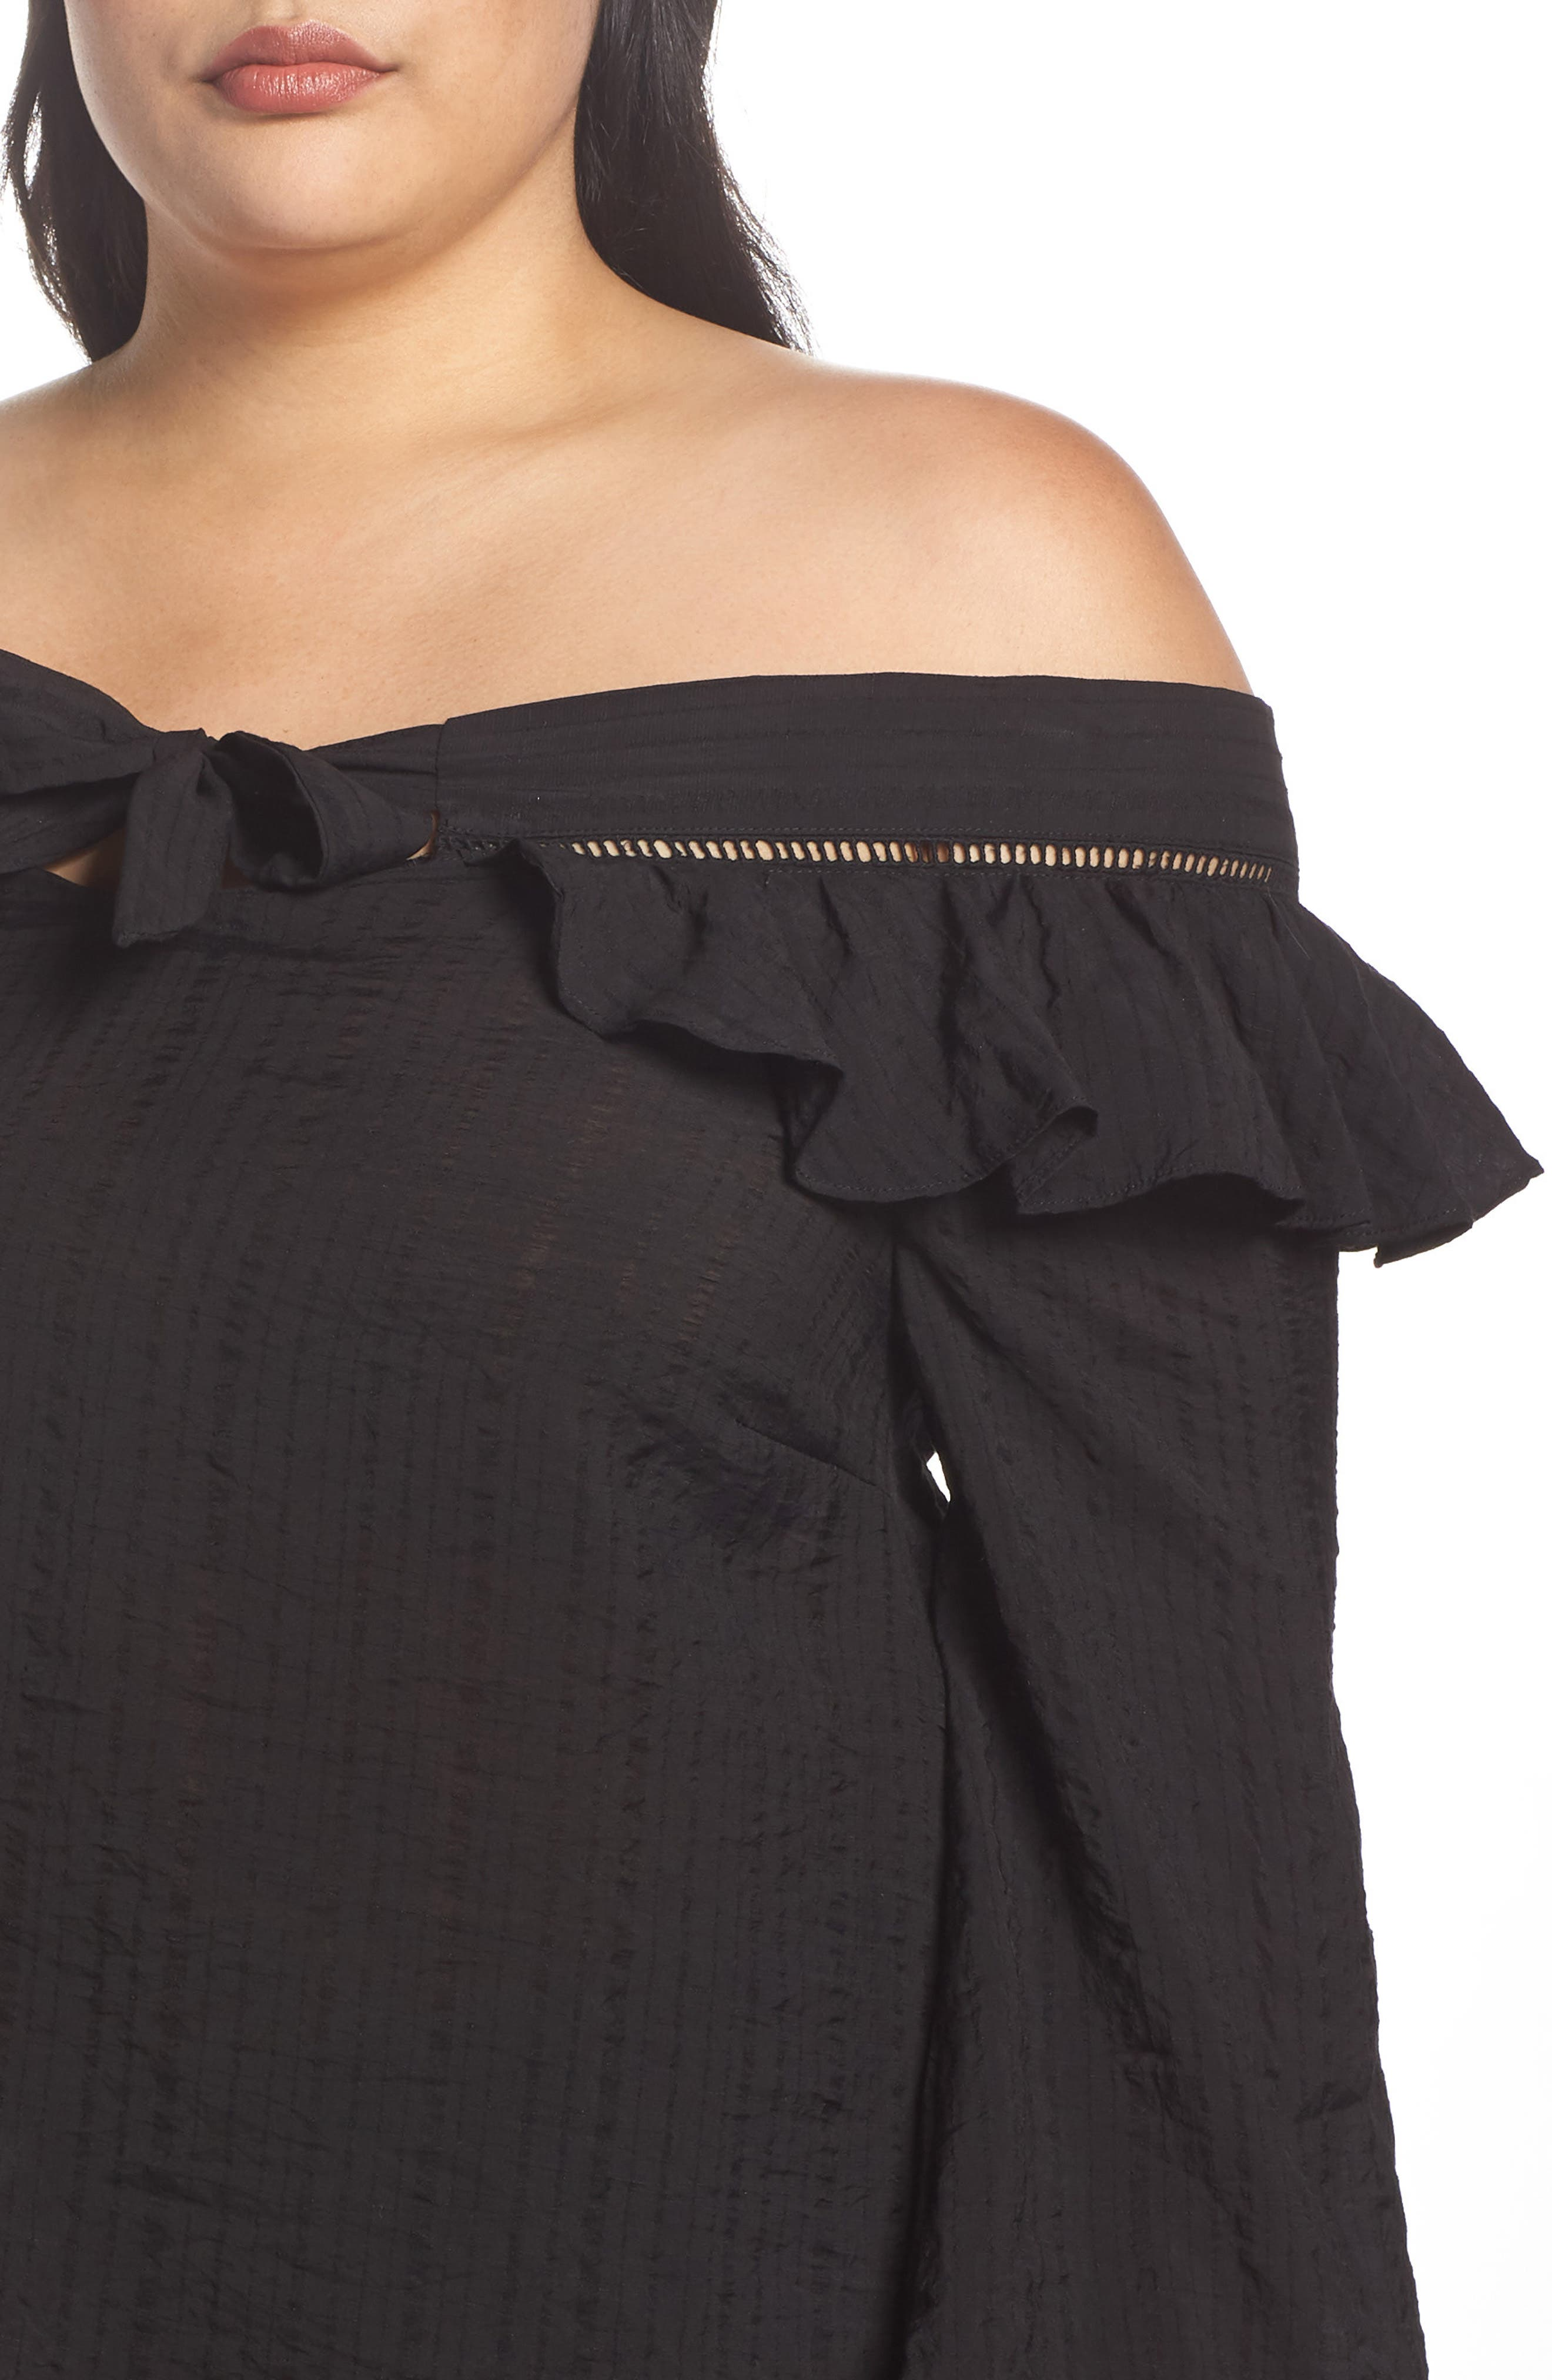 Ruffle Tie Off the Shoulder Top,                             Alternate thumbnail 4, color,                             001